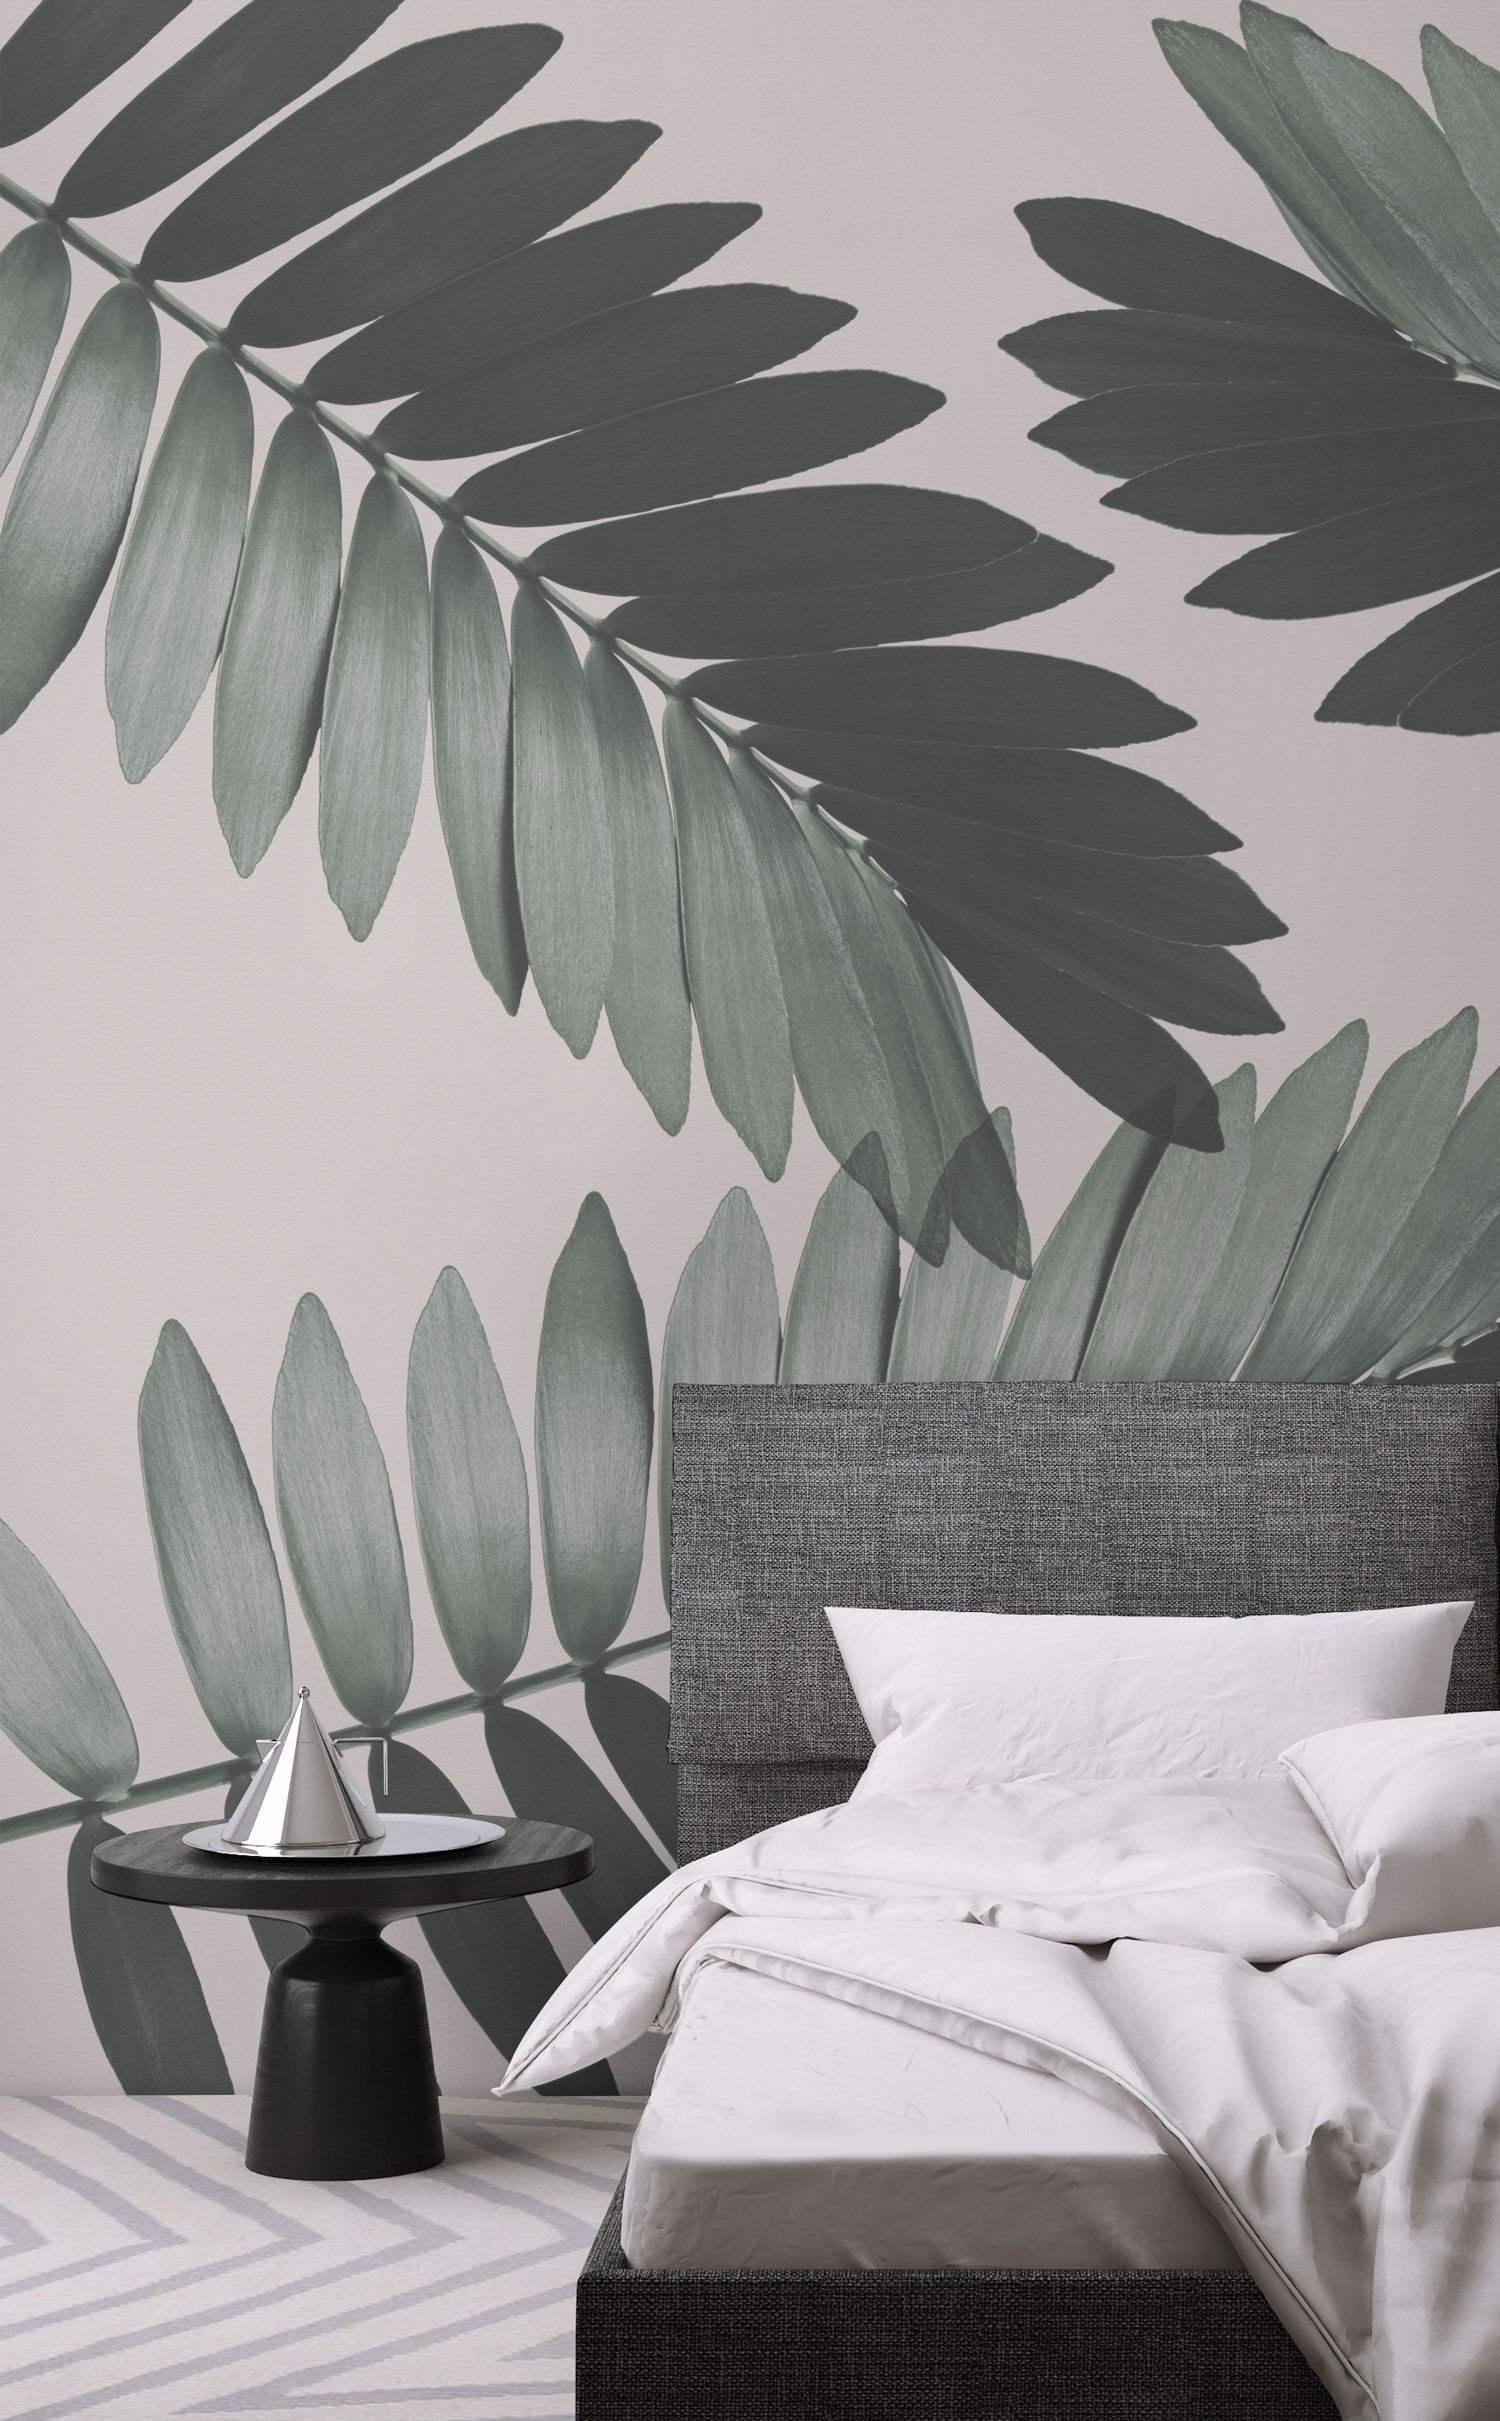 Wall Paper Design for Bedroom Unique Cardboard Palm Wall Mural In 2020